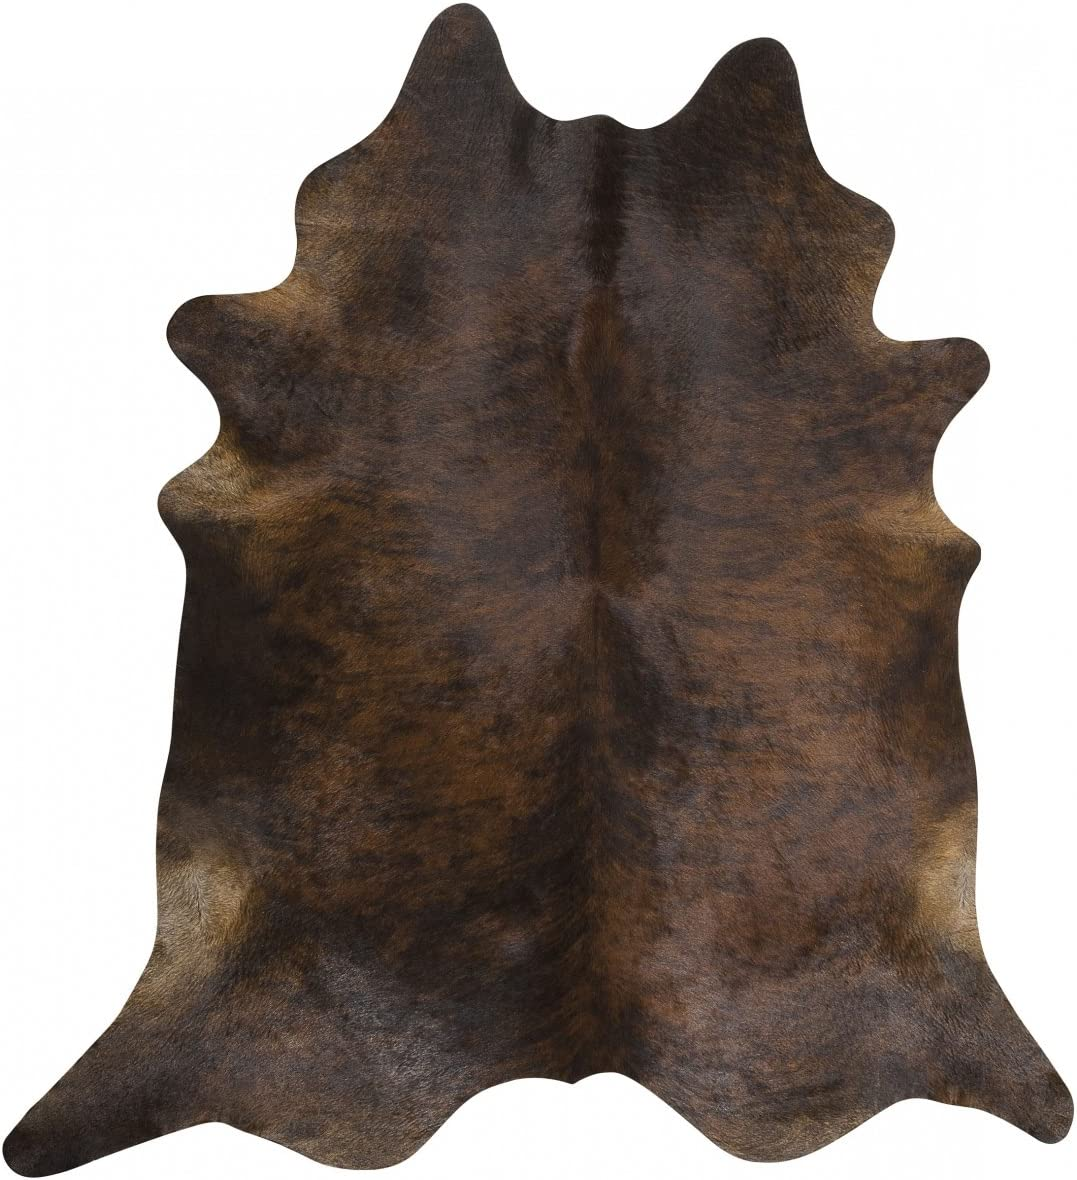 Dark Brindle by Rodeo Cowhide Rug Hair on Cowhide Leather Rug Great Decoration Essential Western Decor Must Have 6X6